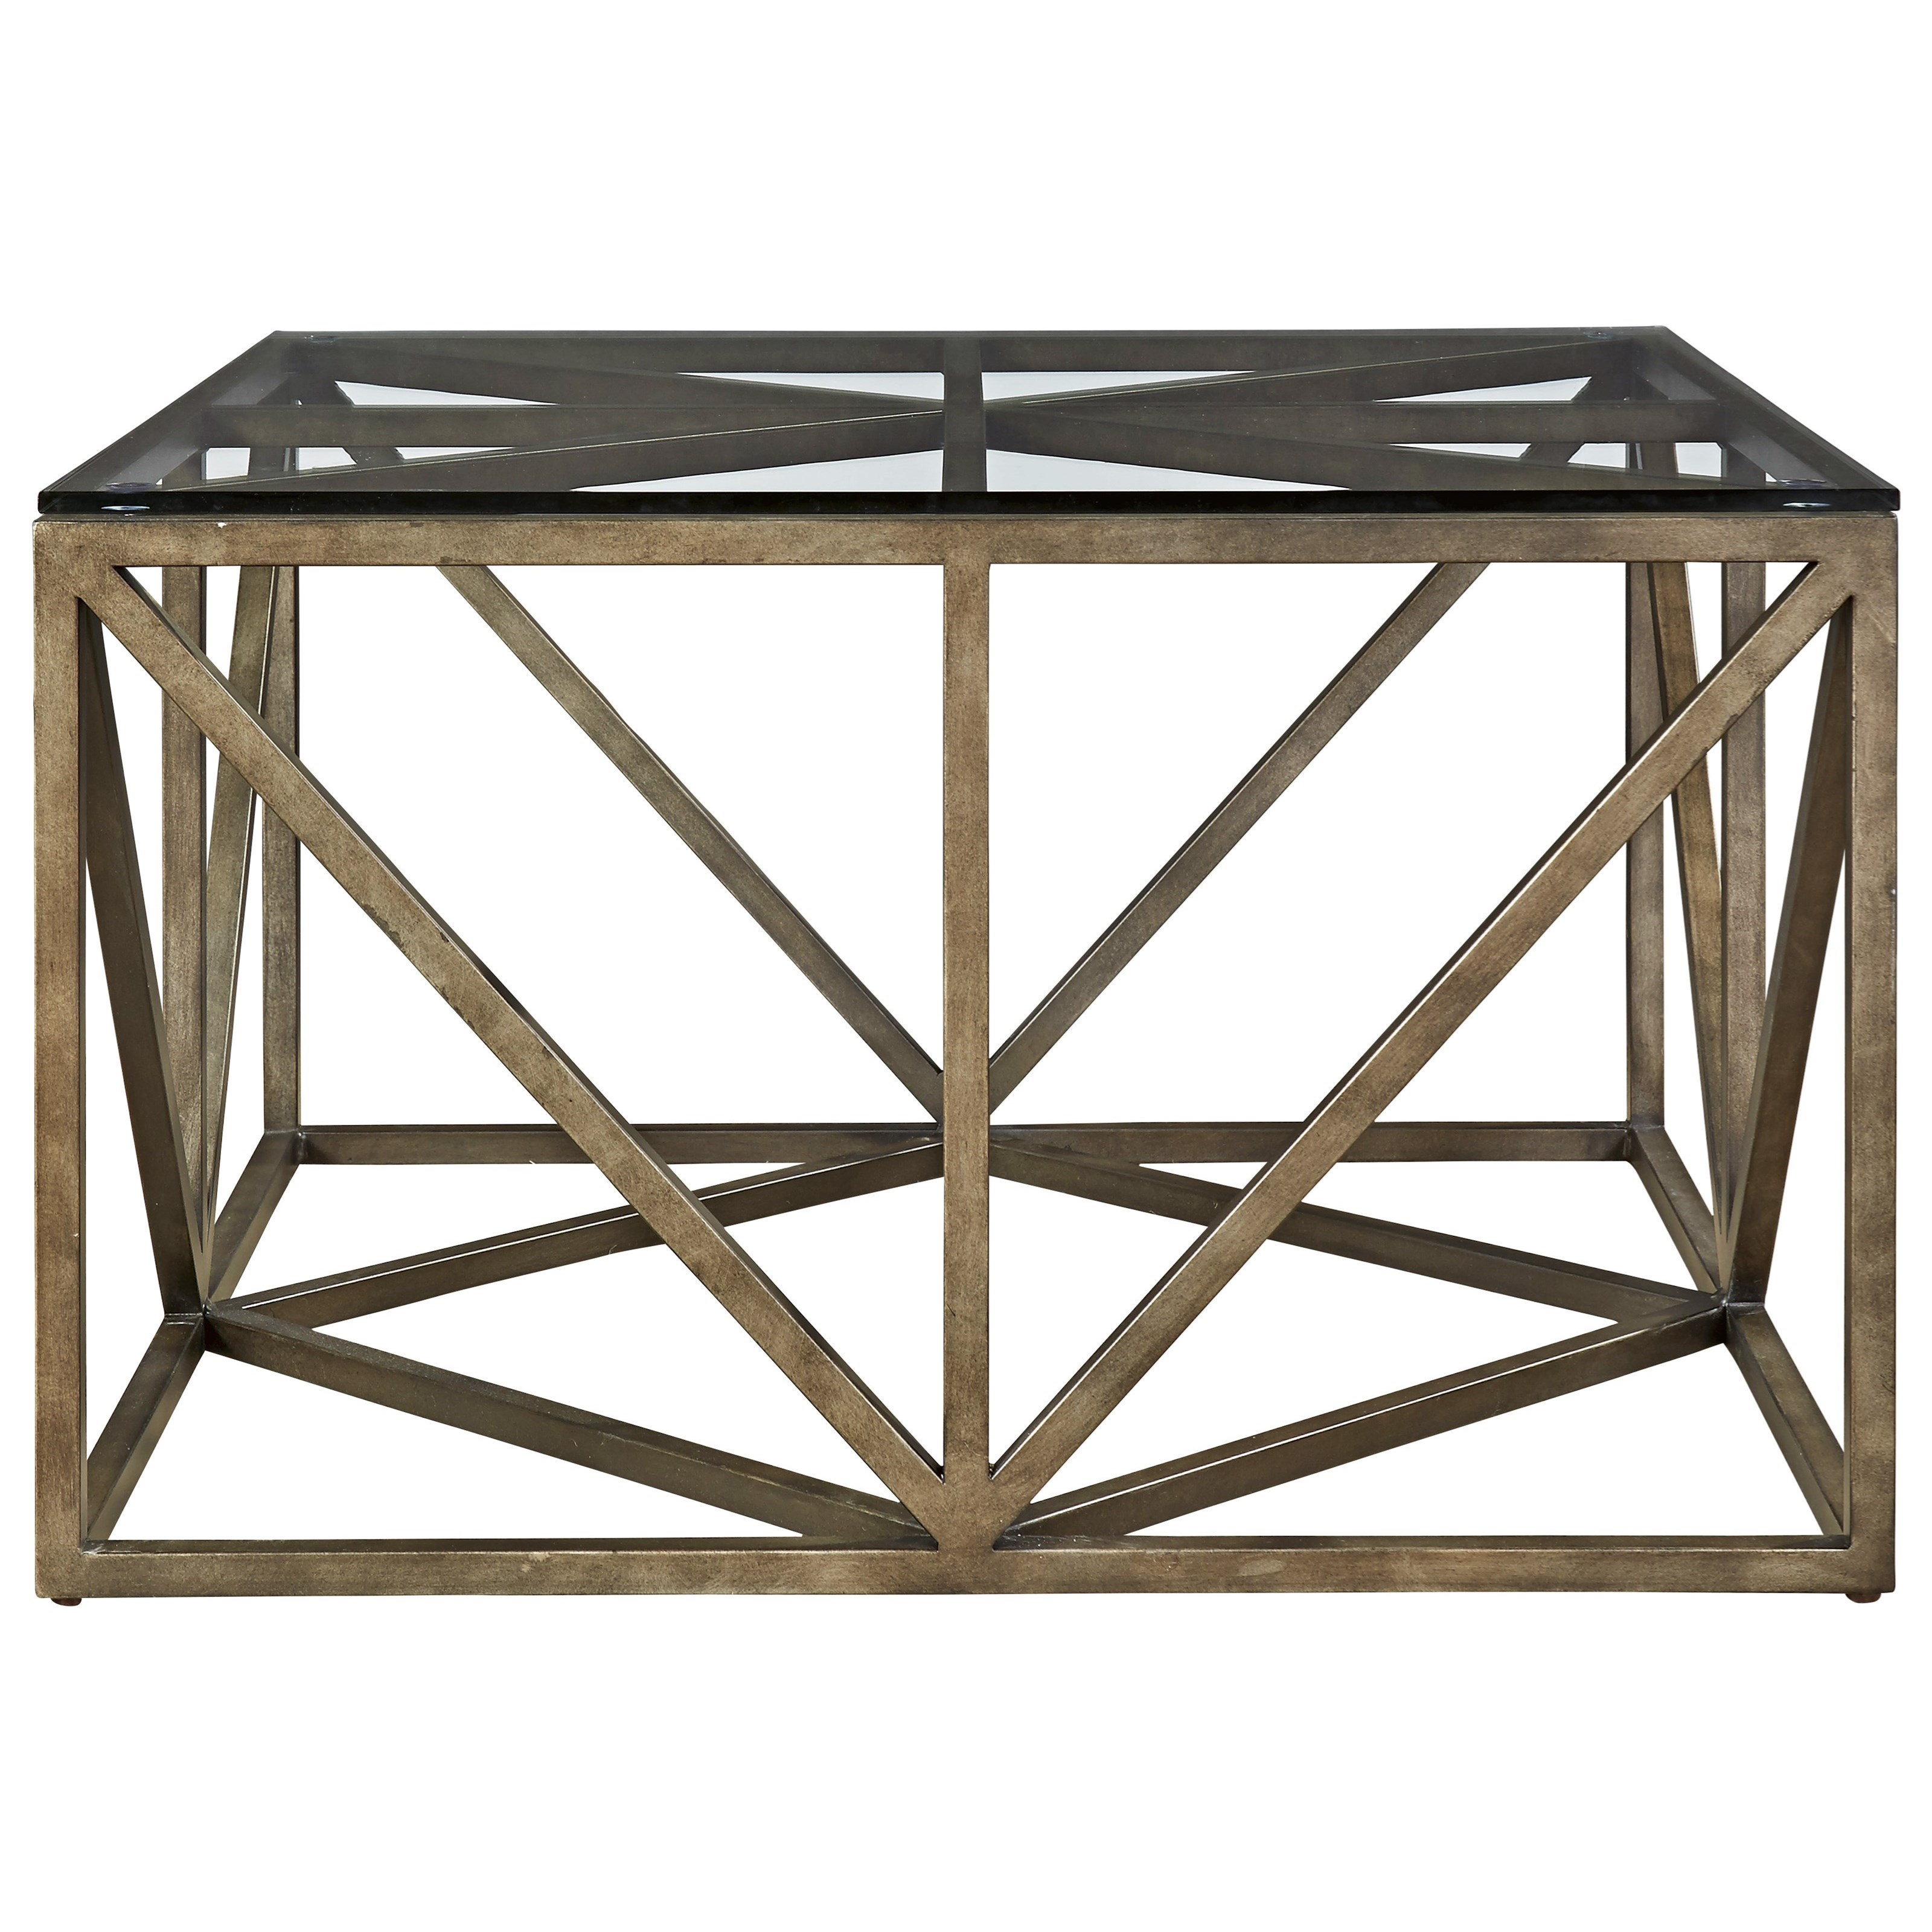 Universal Authenticity 572801 Truss Square Cocktail Table